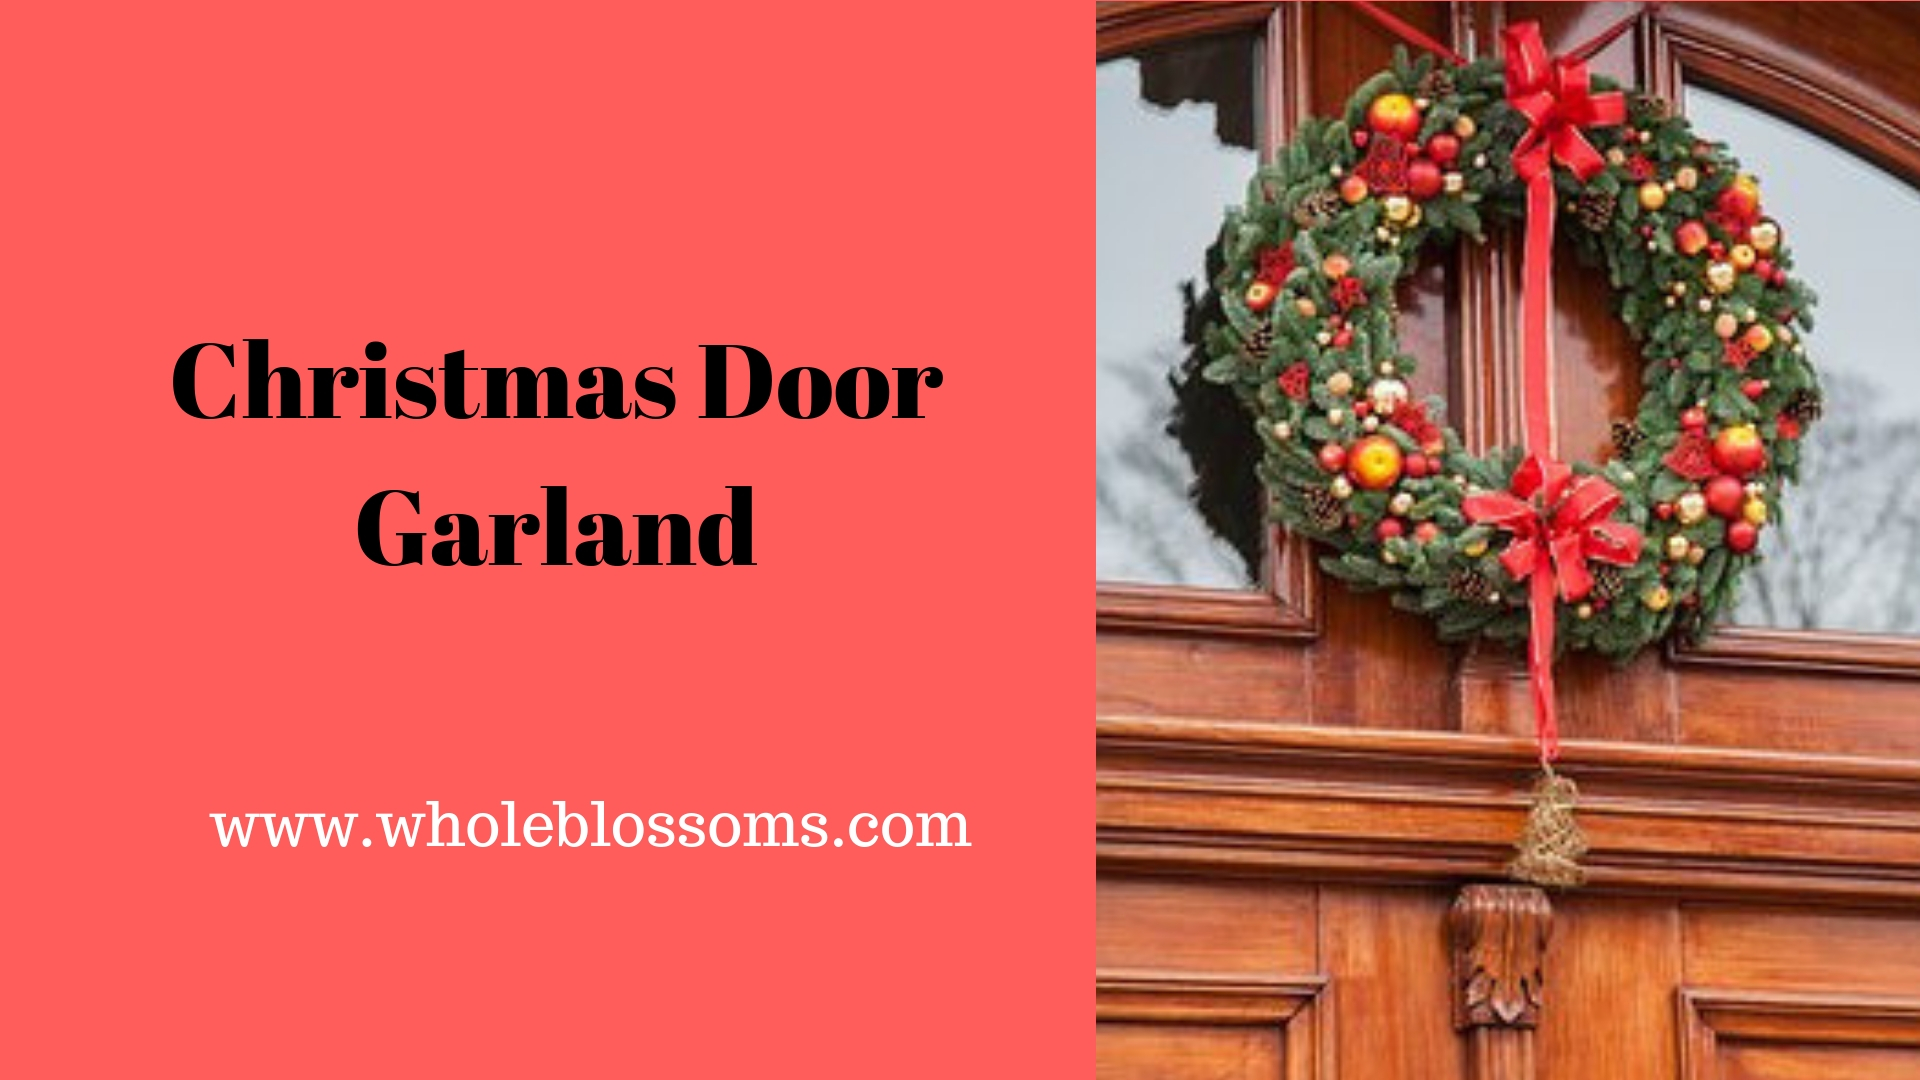 Purchase wholesale Christmas wreaths and garlands